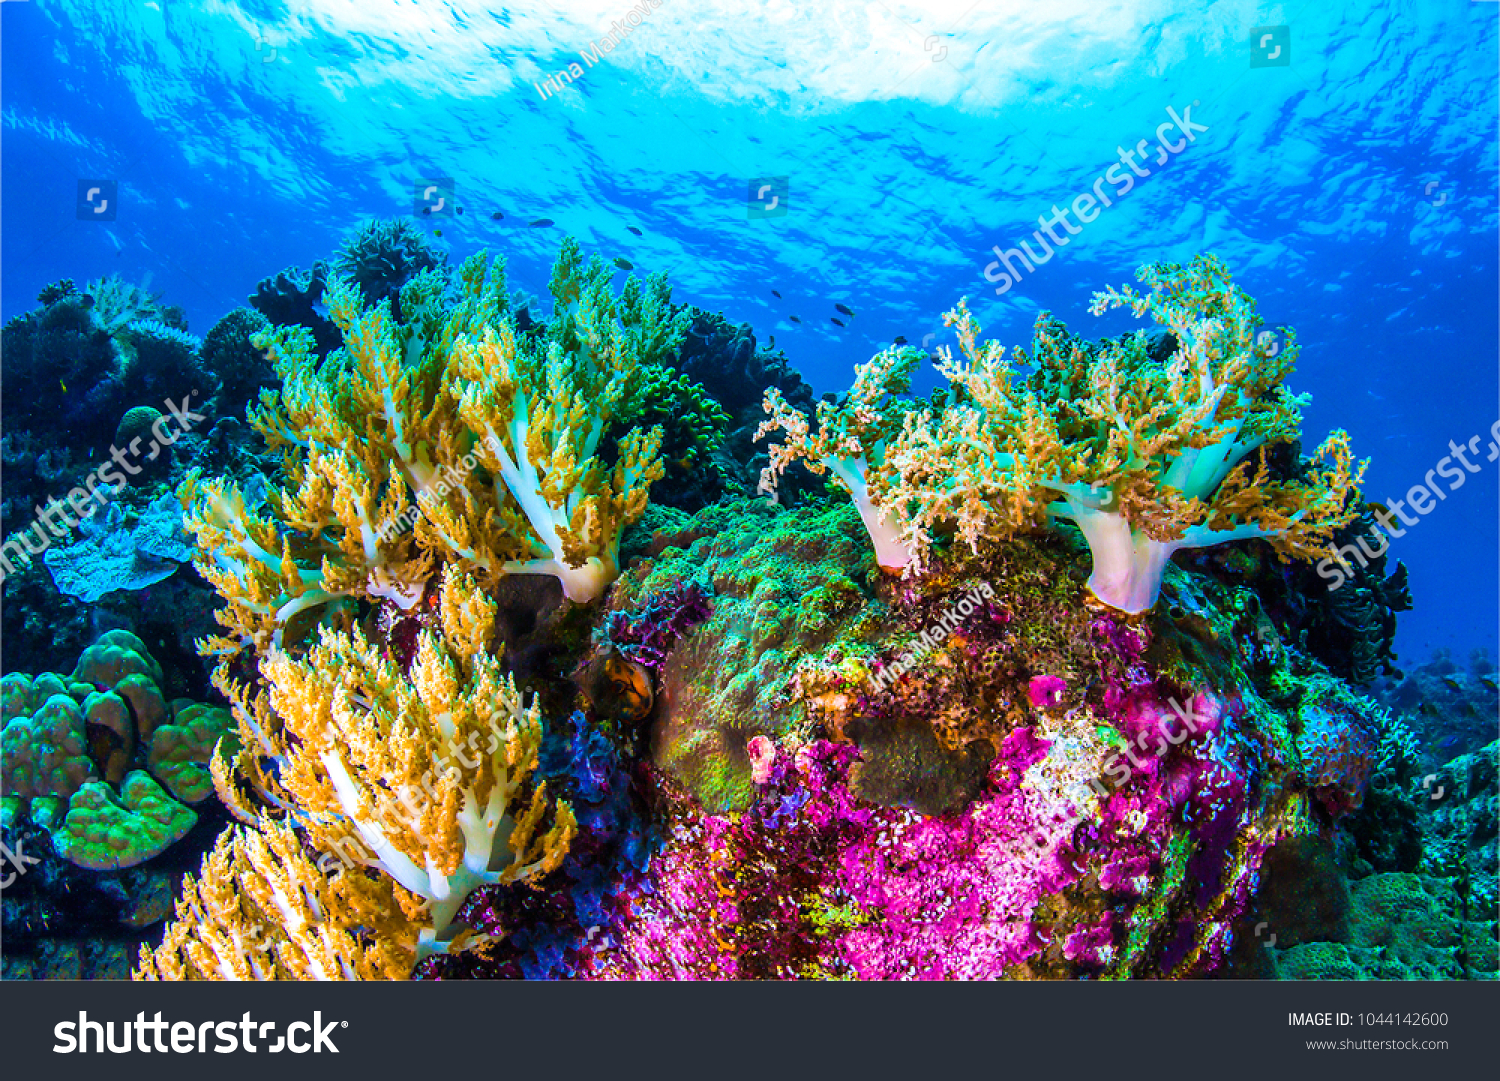 Underwater coral reef sea view landscape #1044142600